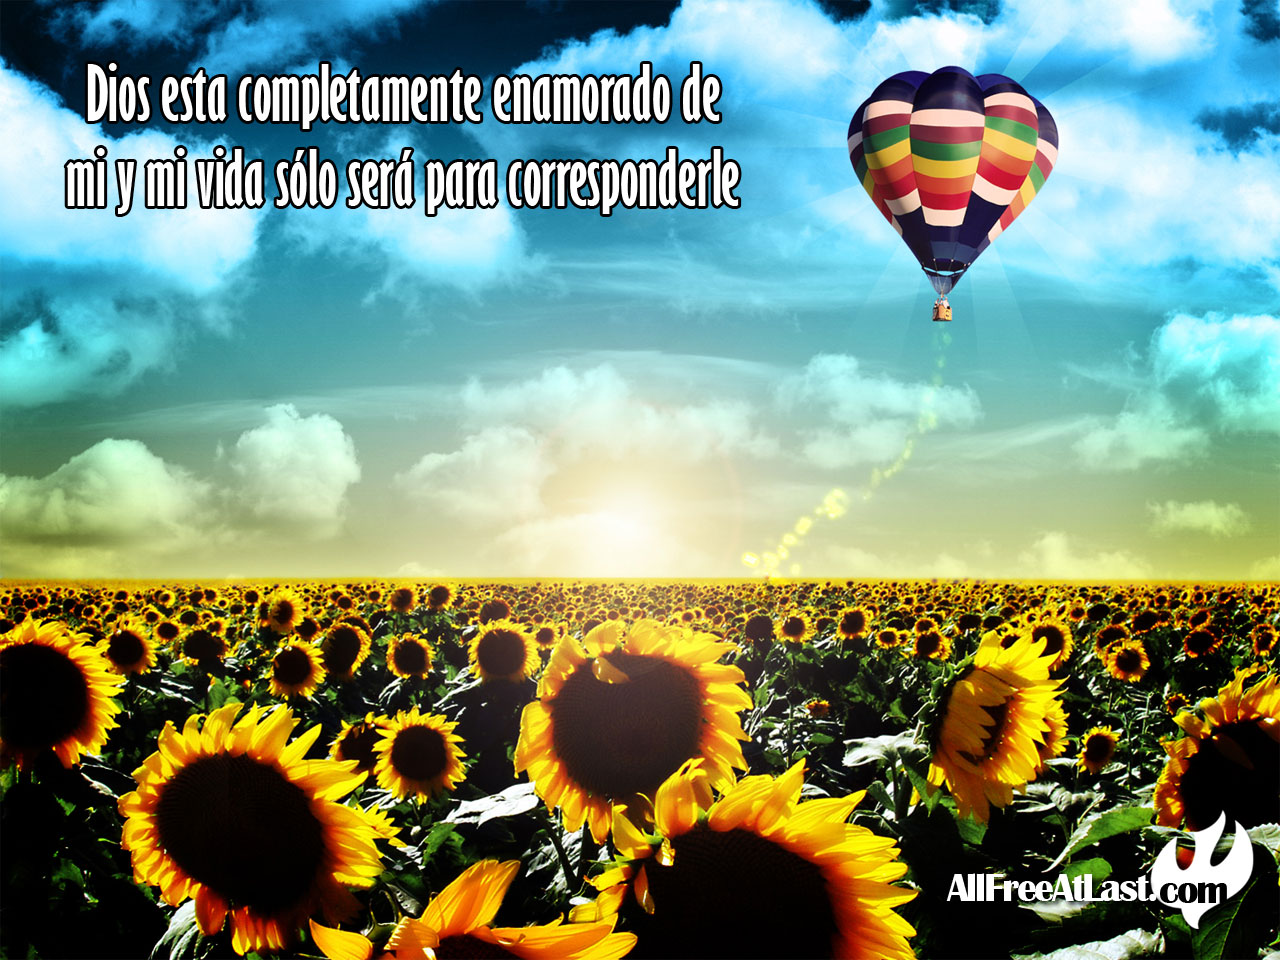 Sunflowers and Hot Air Balloon